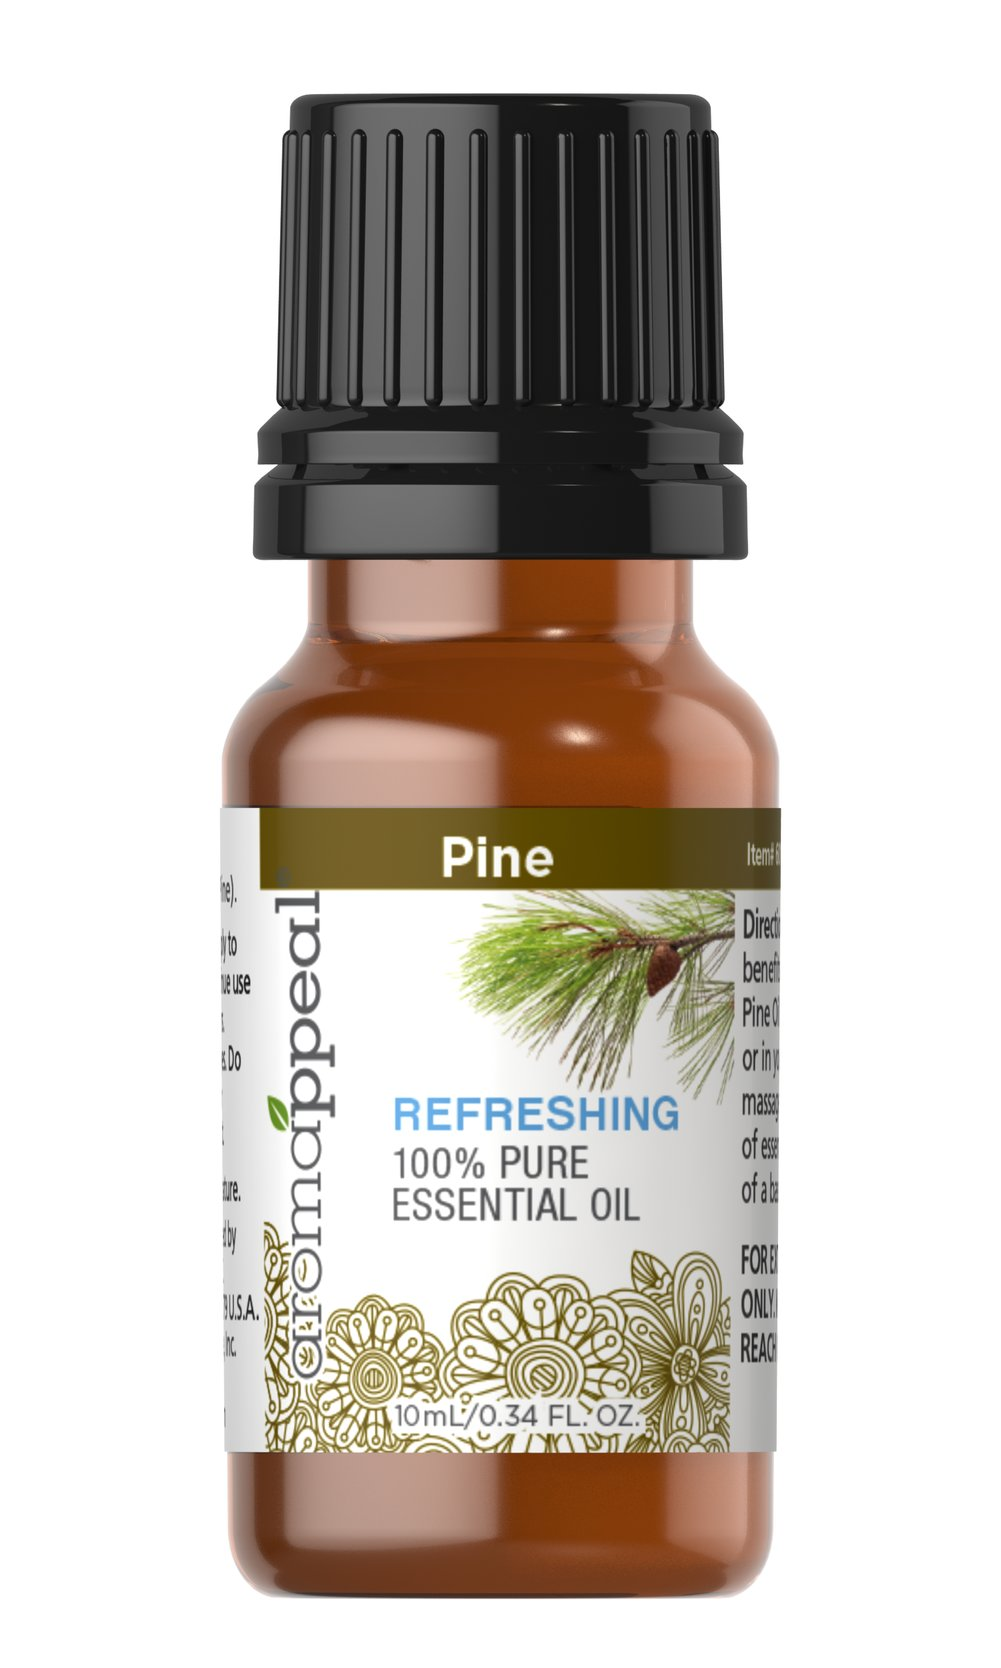 Pine 100% Pure Essential Oil  10 ml Oil  $11.69